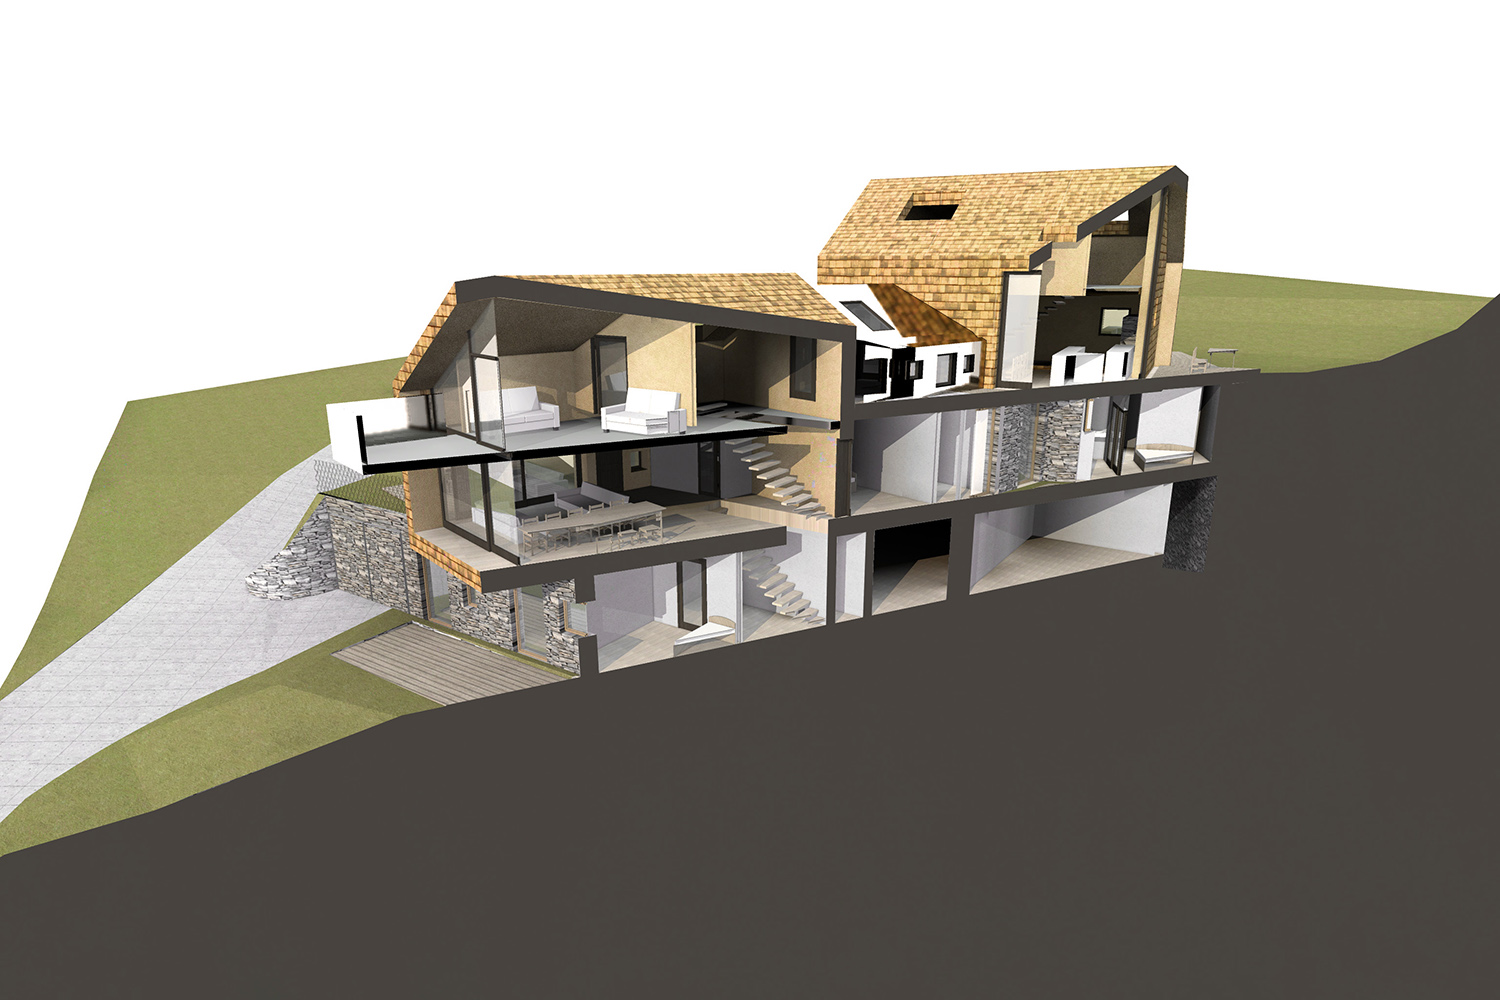 rendering - 3d section }